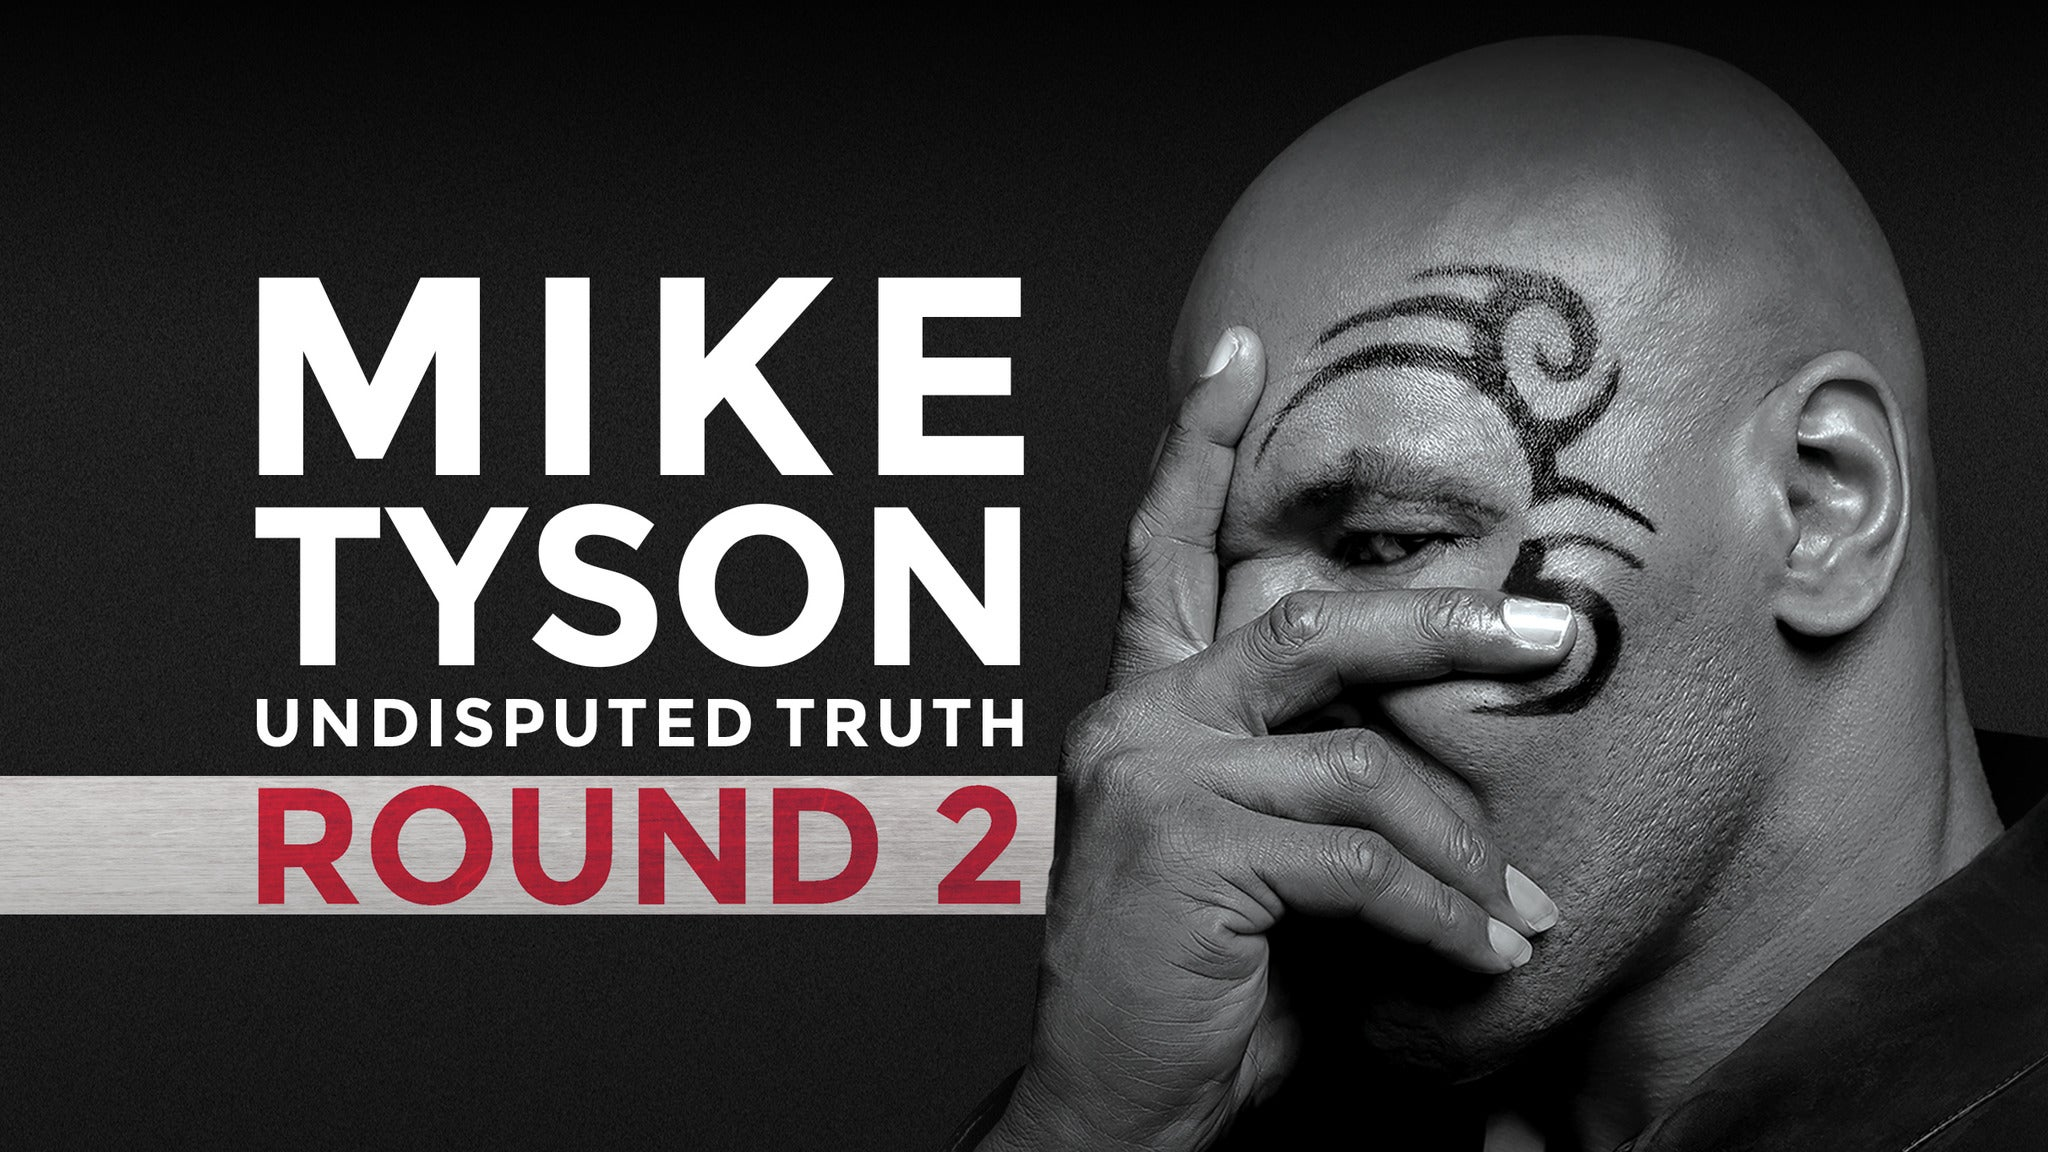 Mike Tyson: Undisputed Truth Round 2